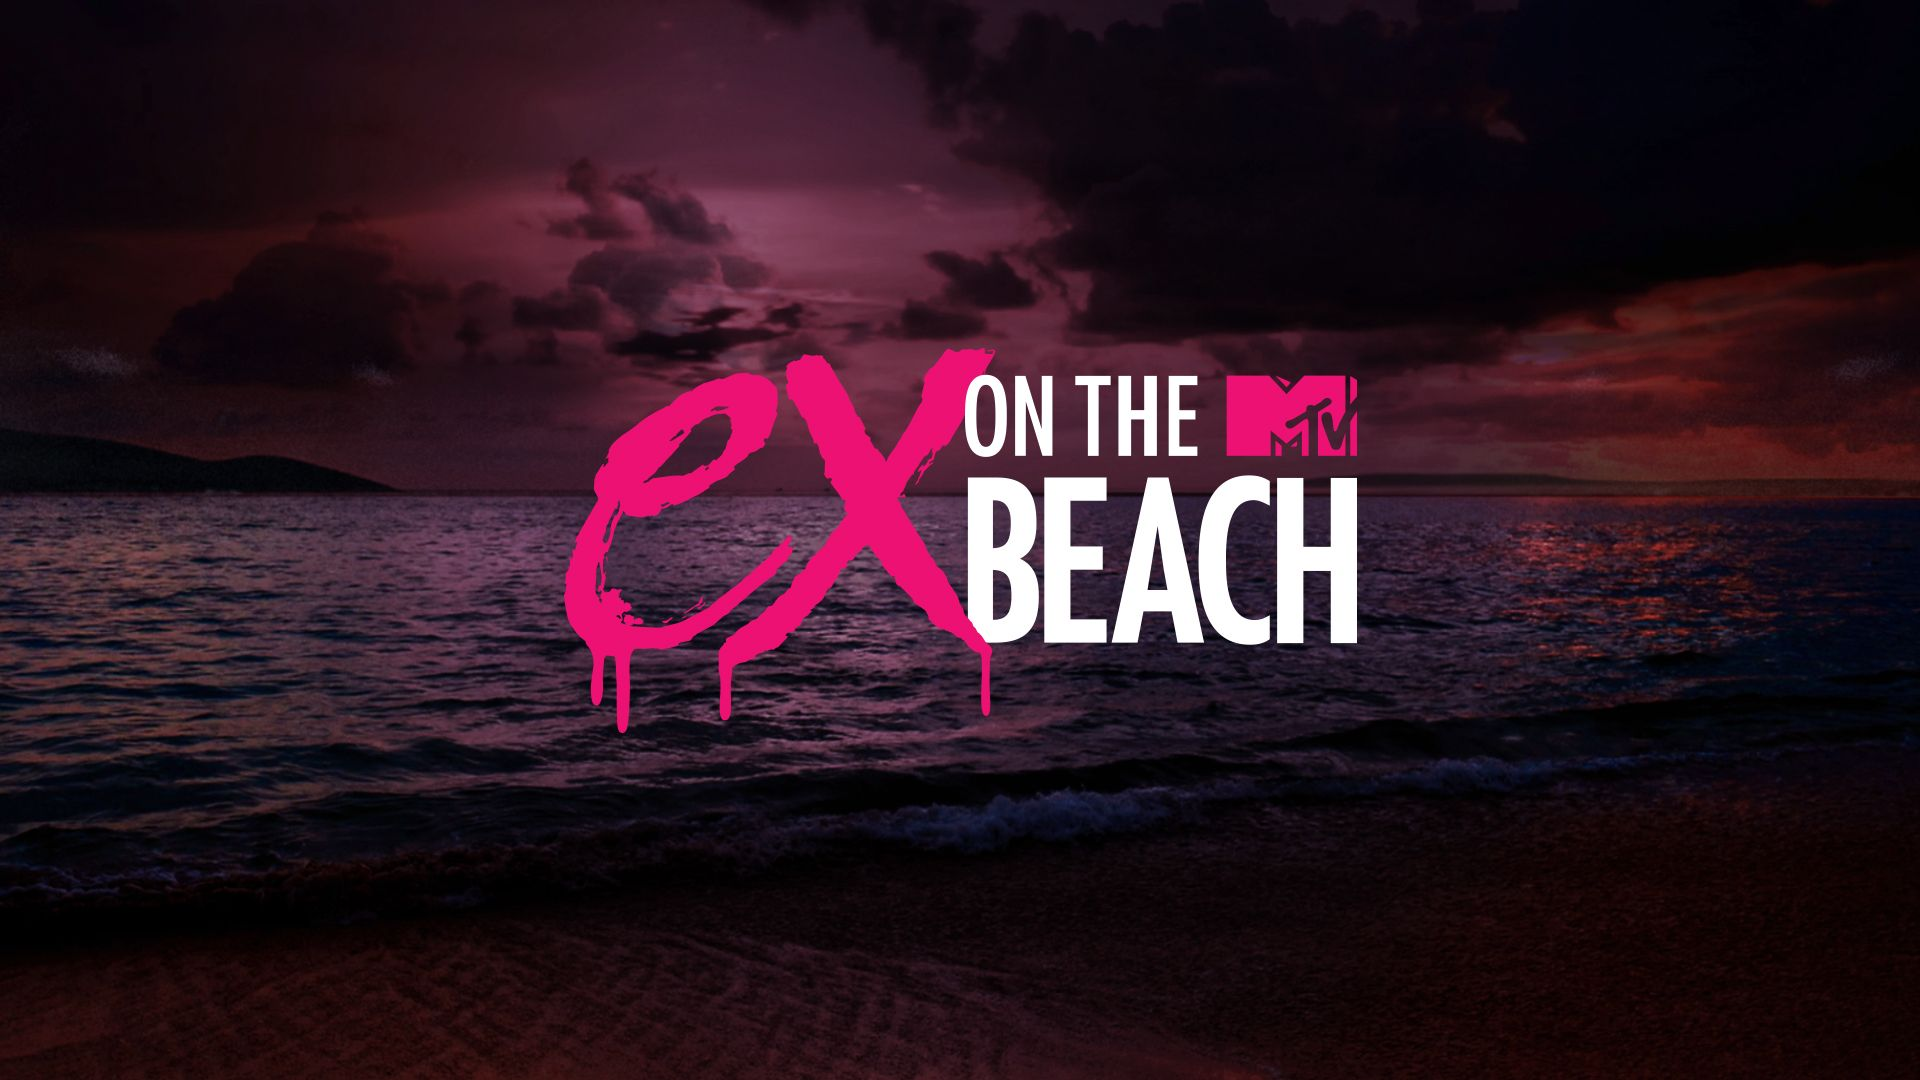 Ex On The Beach - Watch Full Episodes | MTV